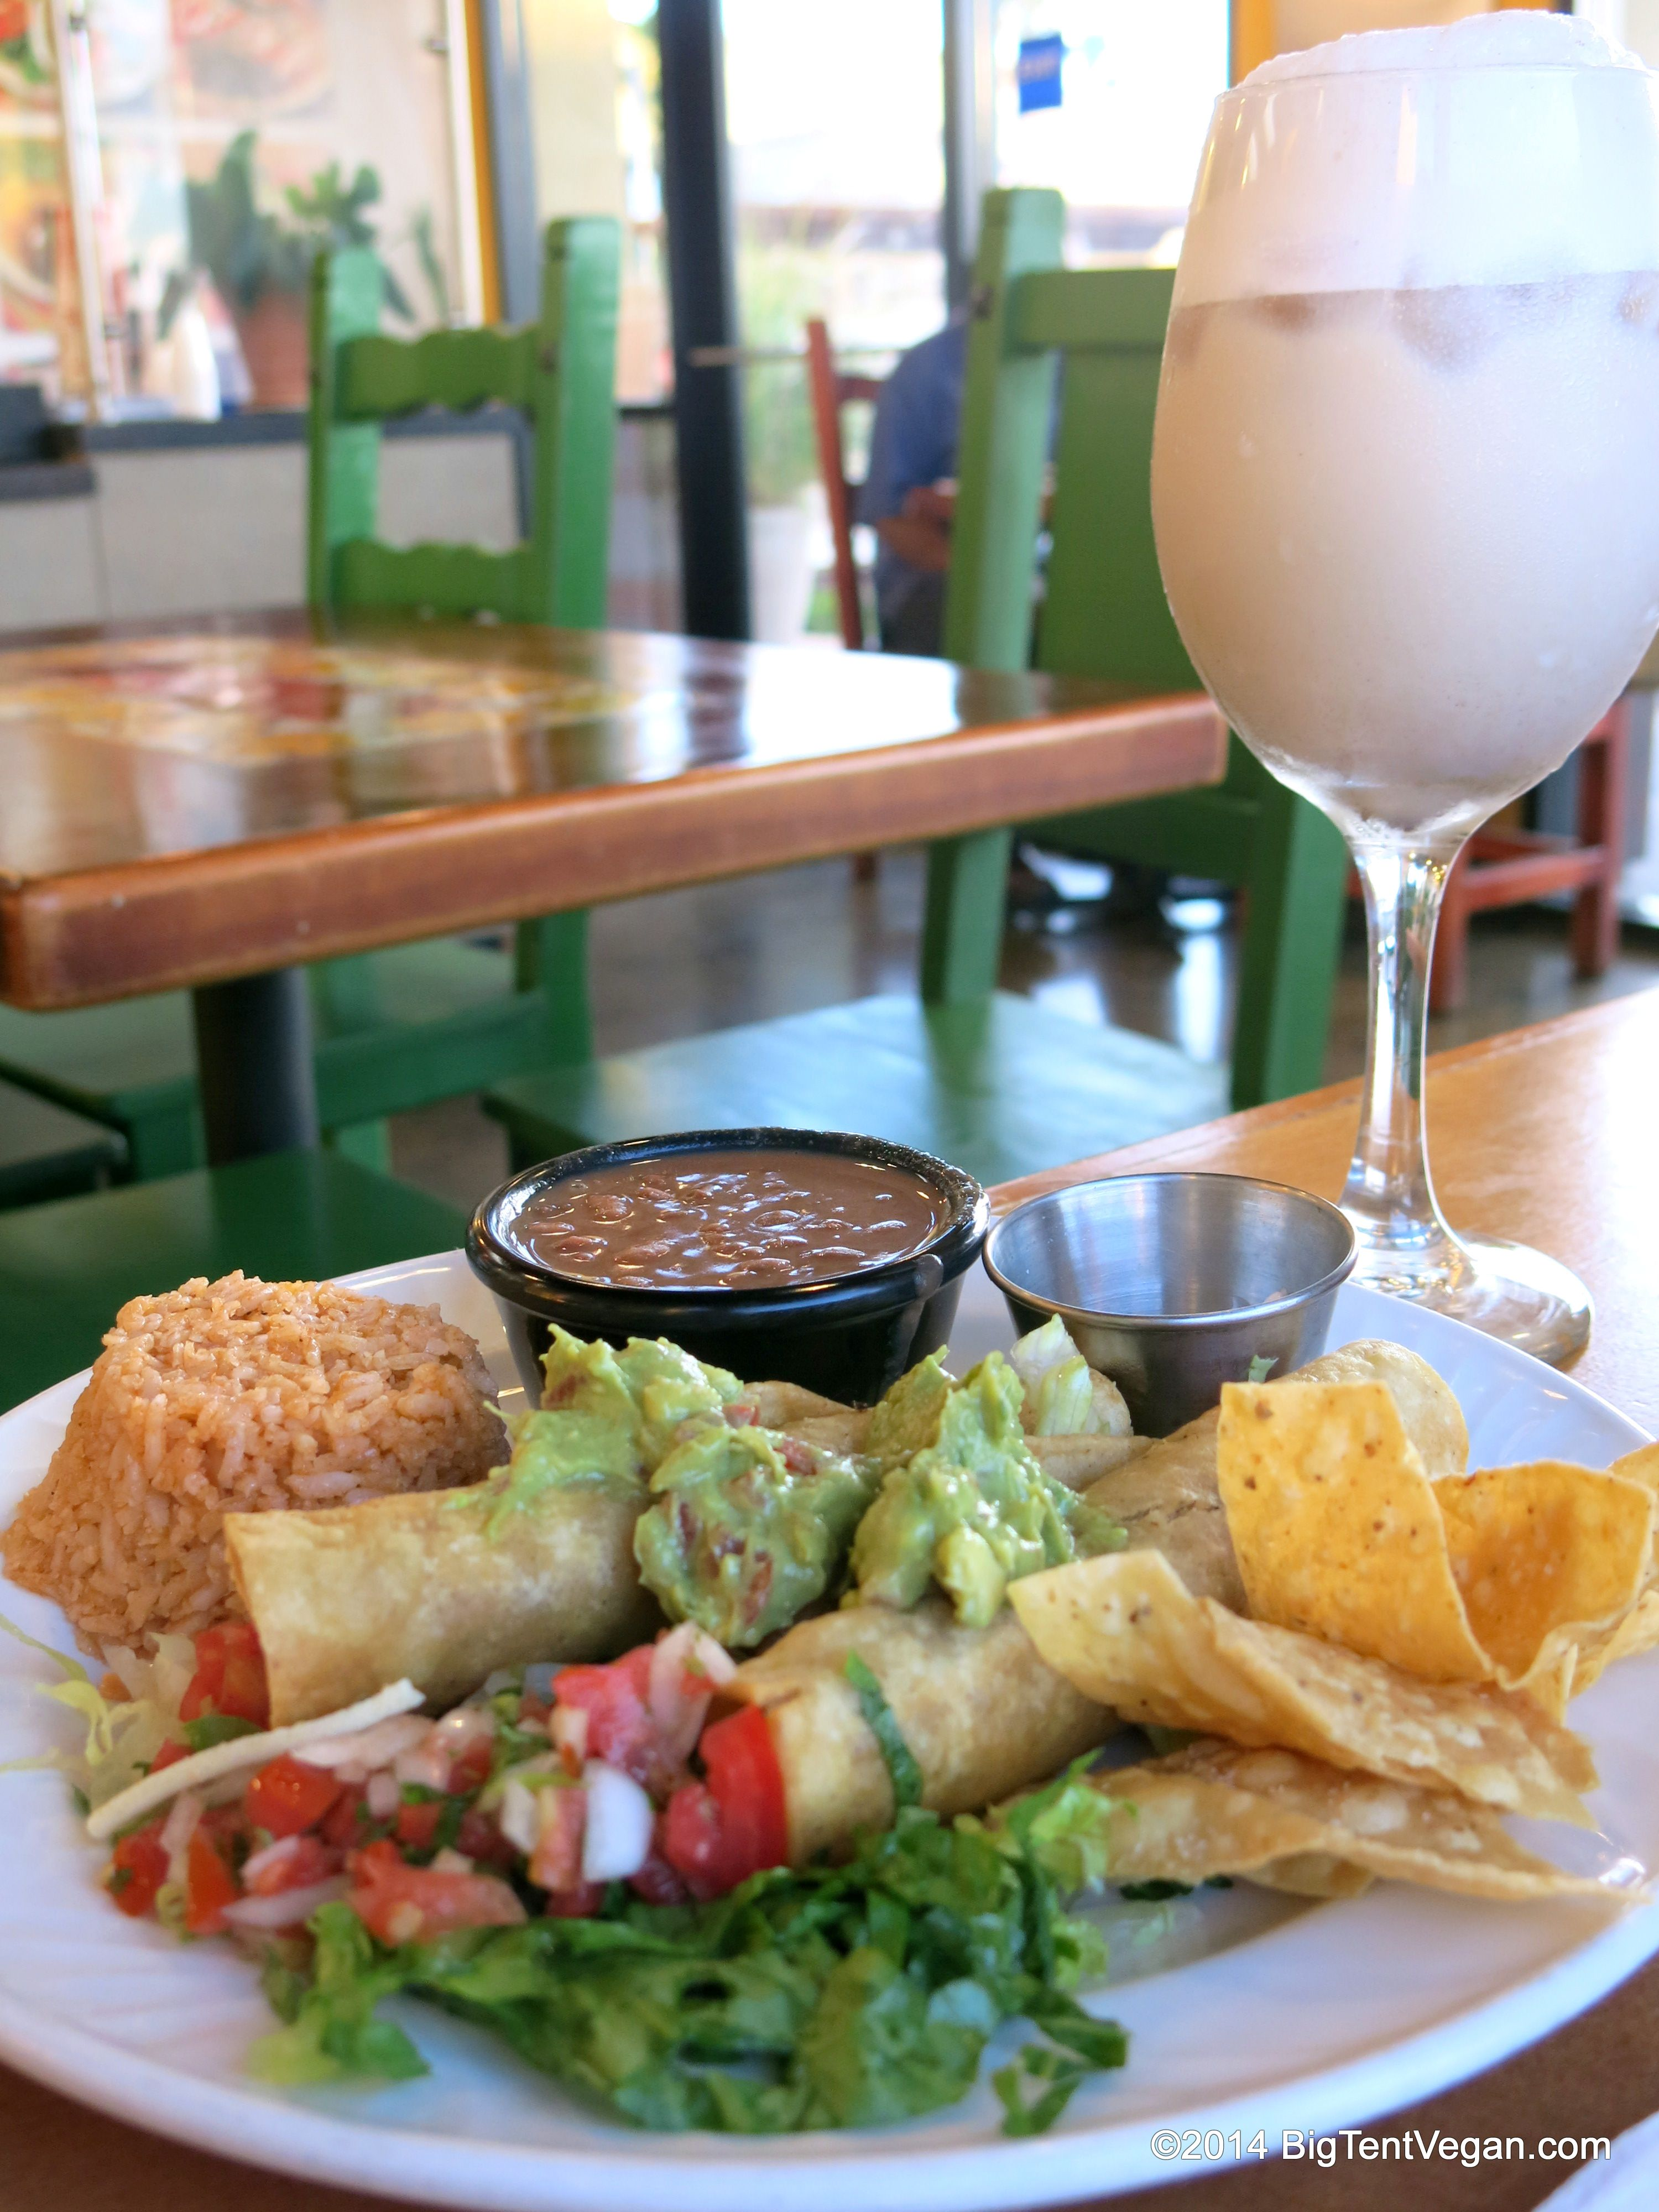 Rice Salsa Guacamole Tofutti Sour Dream And Chips Plus Vegan Horchata Blended Cinnamon Milk Drink Tacos Cancun Santa Ana Ca